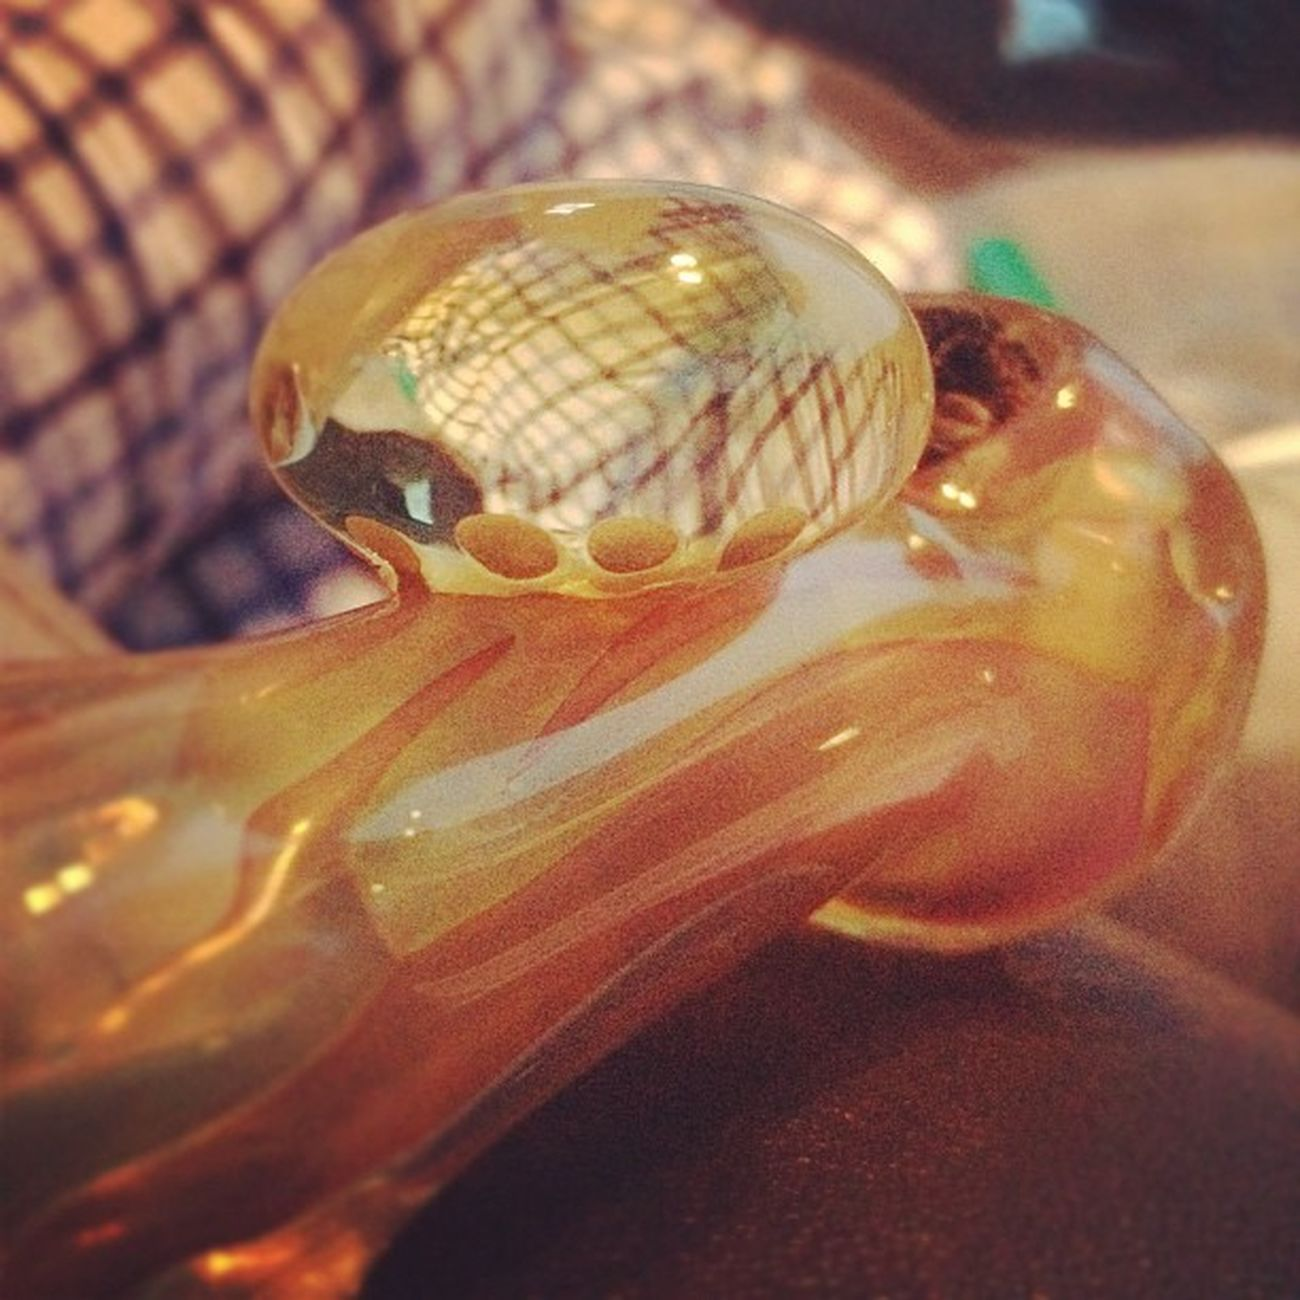 420365247 Weed Newpiece Pipes bubbles mushrooms plaid heavyhitter